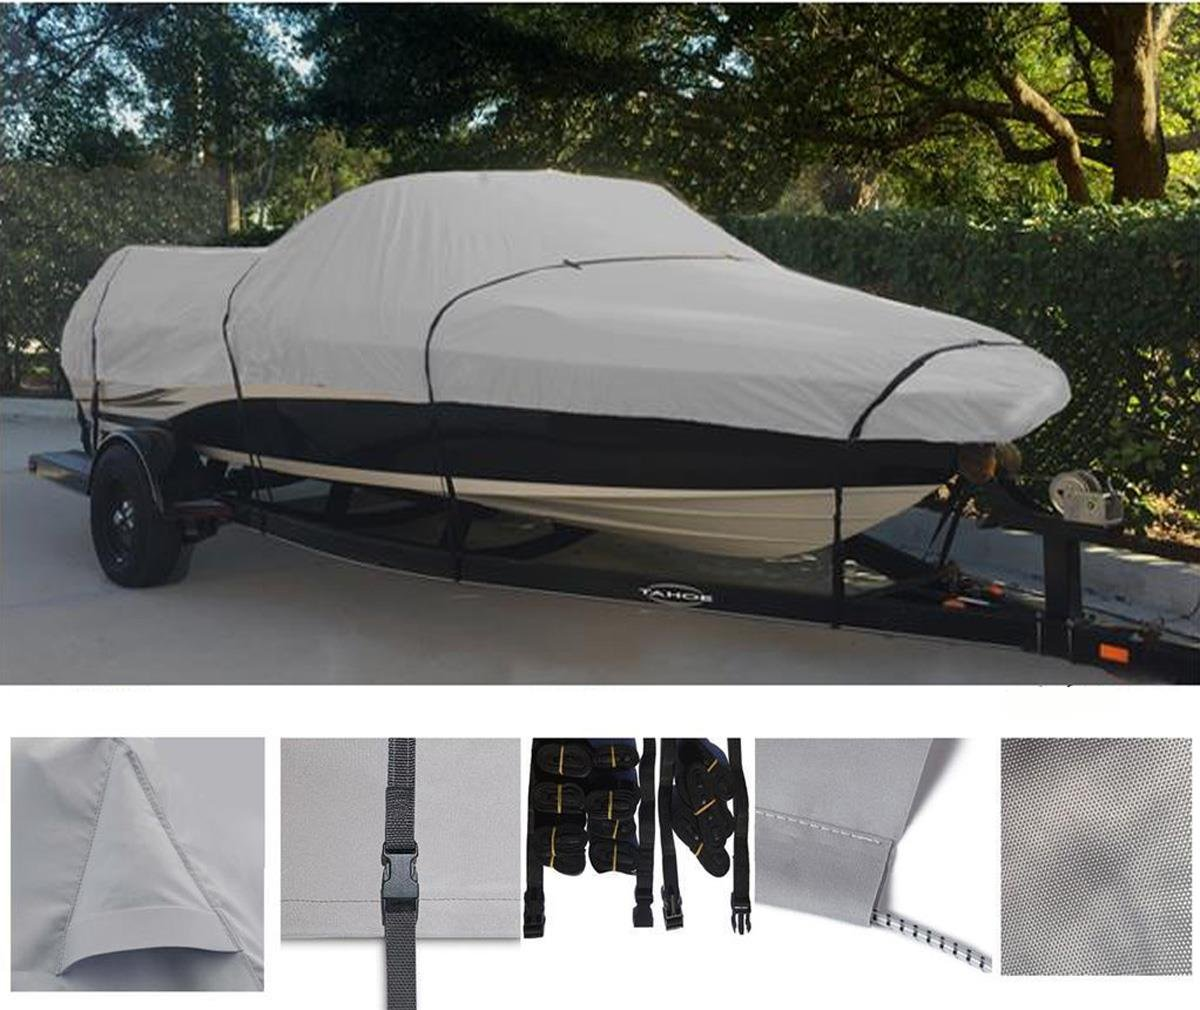 GREY, STORAGE, TRAVEL, MOORING BOAT COVER FOR TRITON TR 196-DC O/B 2004 HEAVY-DUTY by SBU